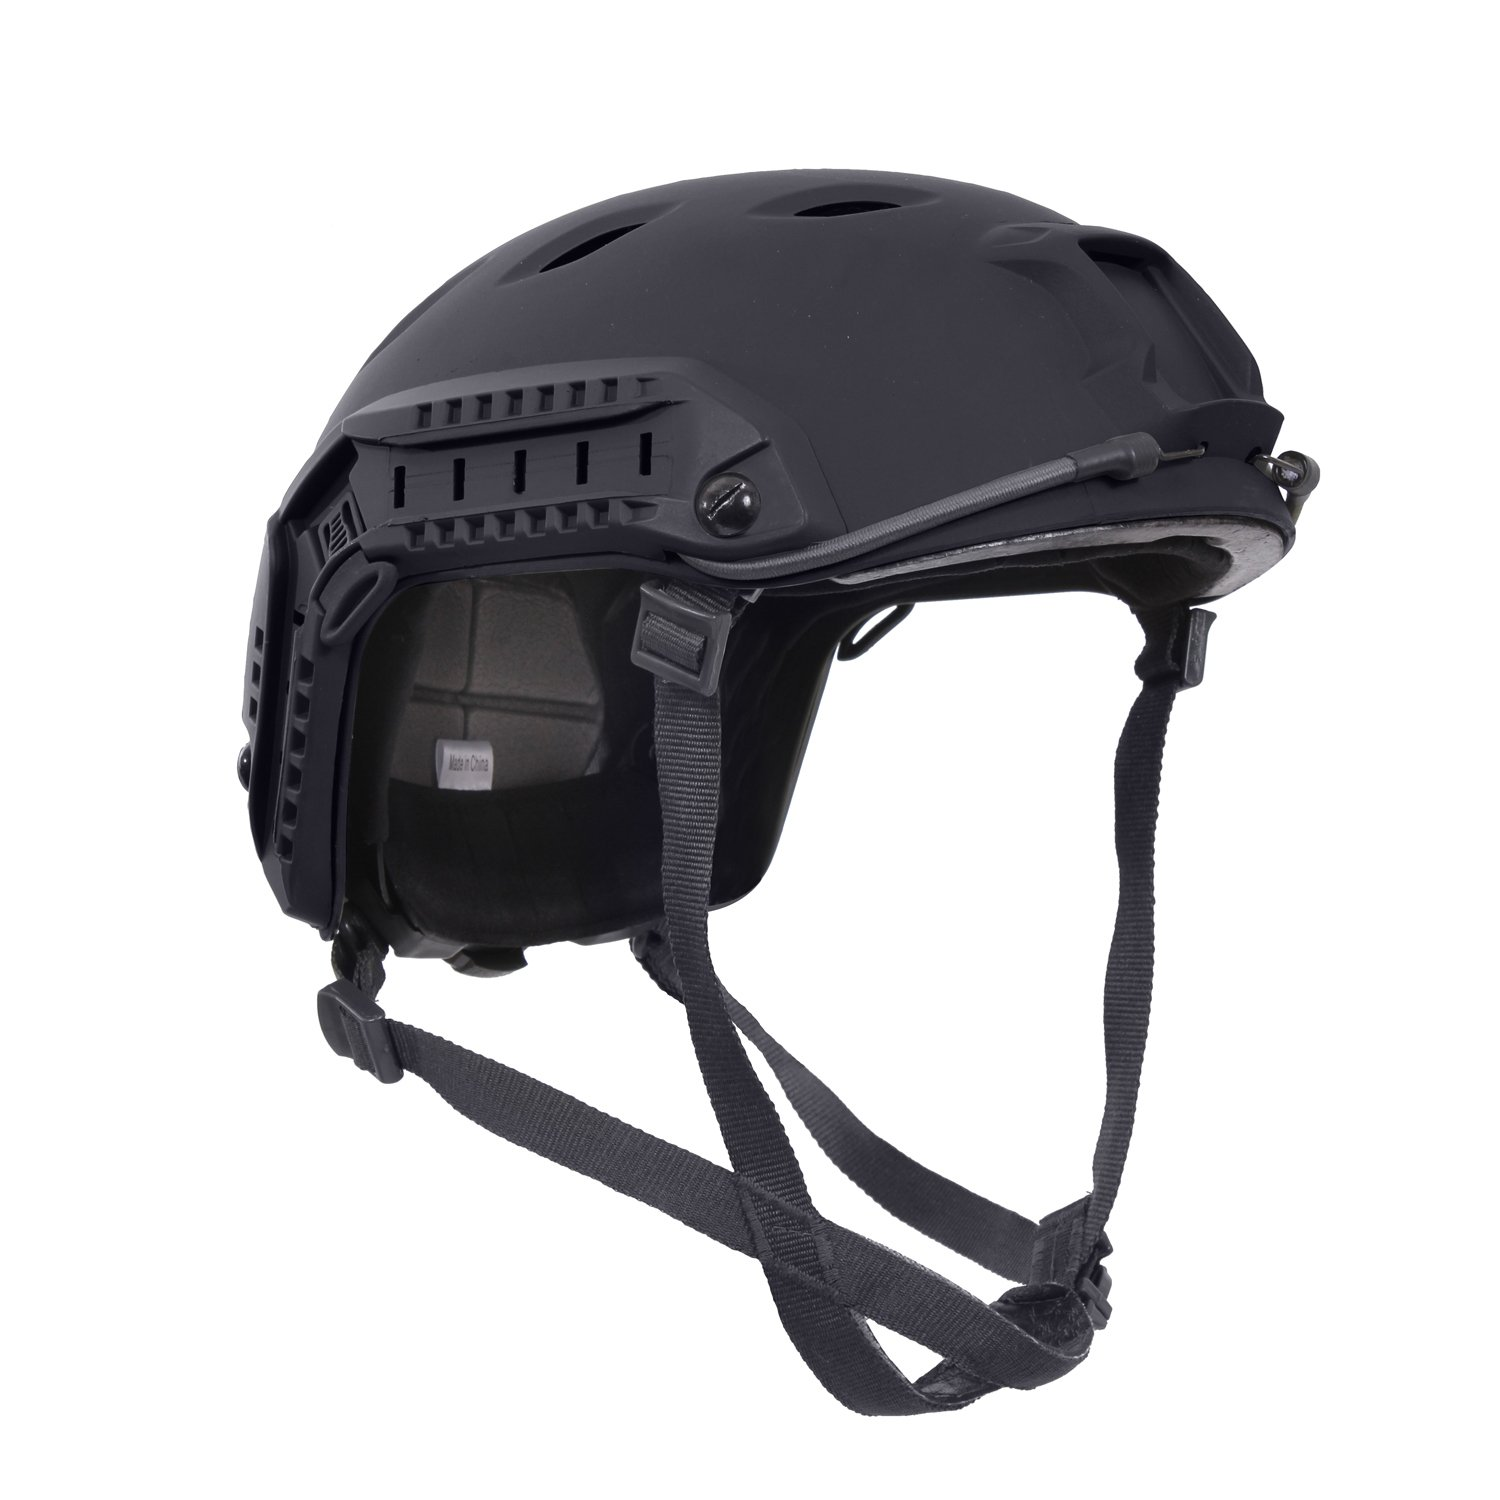 Rothco Advanced Tactical Adjustable Airsoft Helmet, Black by Rothco